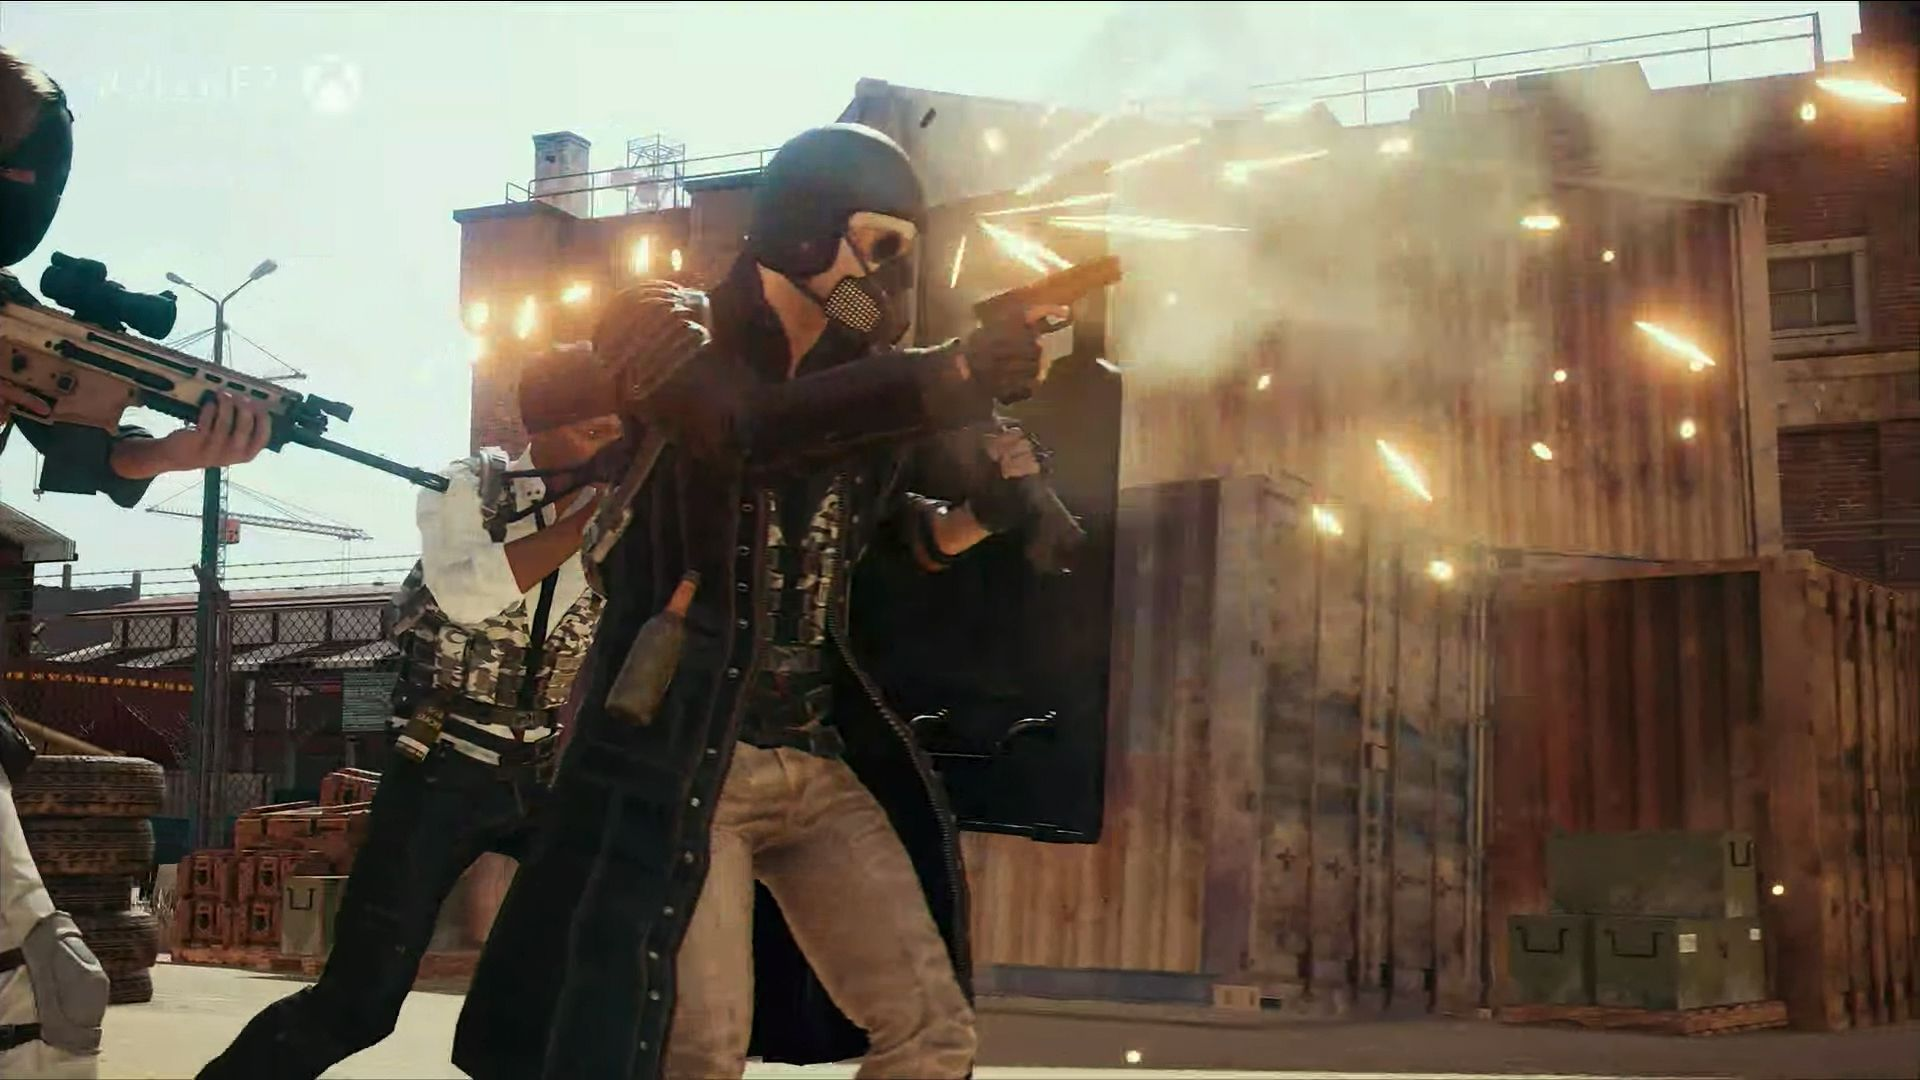 Pubg S Sanhok Map Coming To Xbox One This Summer Winter Map Teased